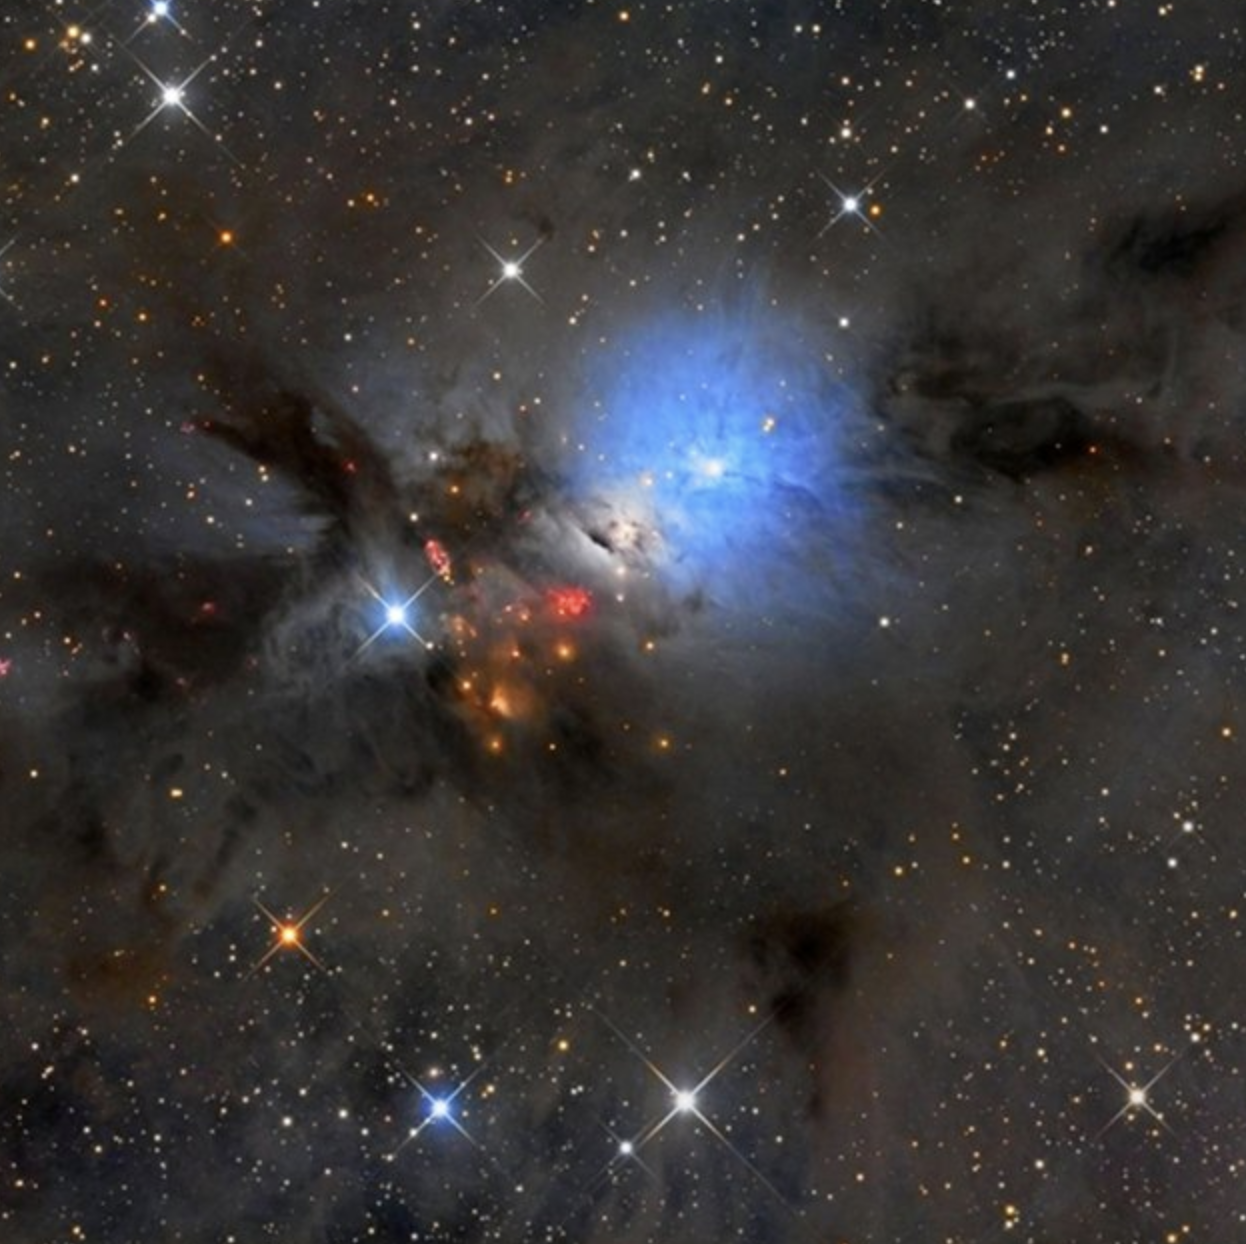 NGC 1333 is seen in visible light as a reflection nebula and lies at the edge of a star-forming molecular cloud. NGC 1333 contains hundreds of stars less than a million years old, over half of them in binary or higher-order systems.